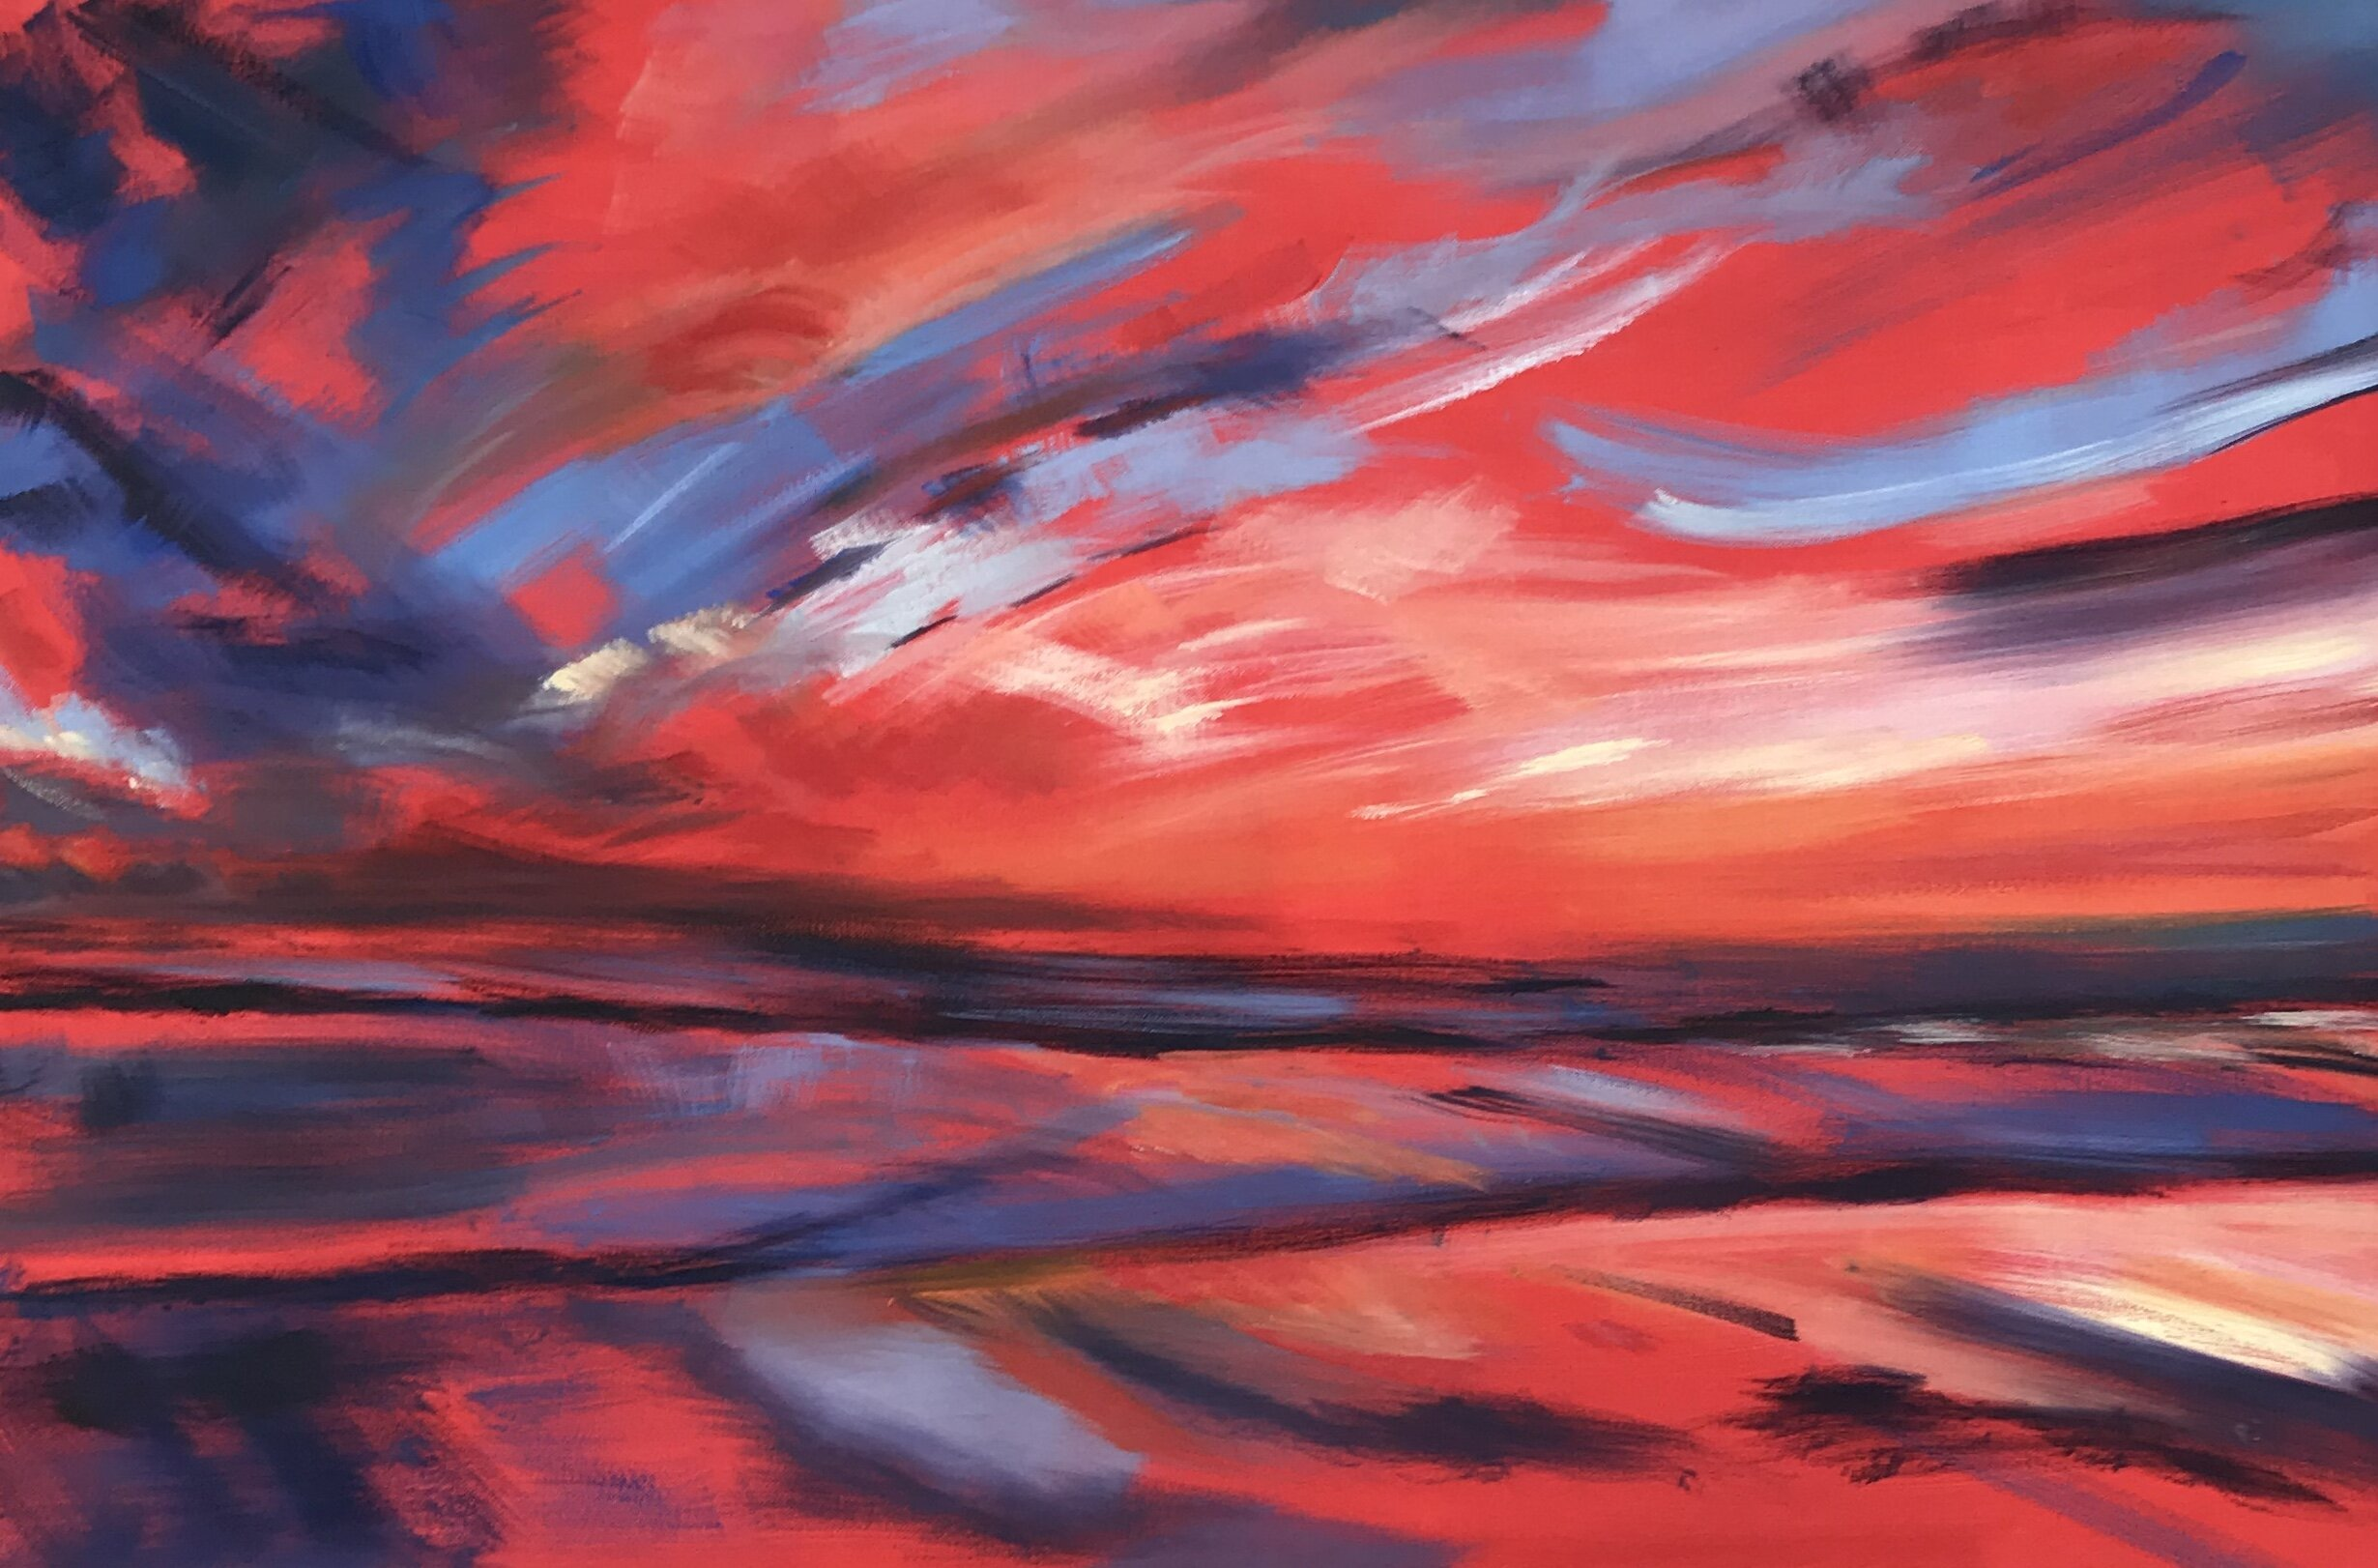 Commission 'Red Skies'